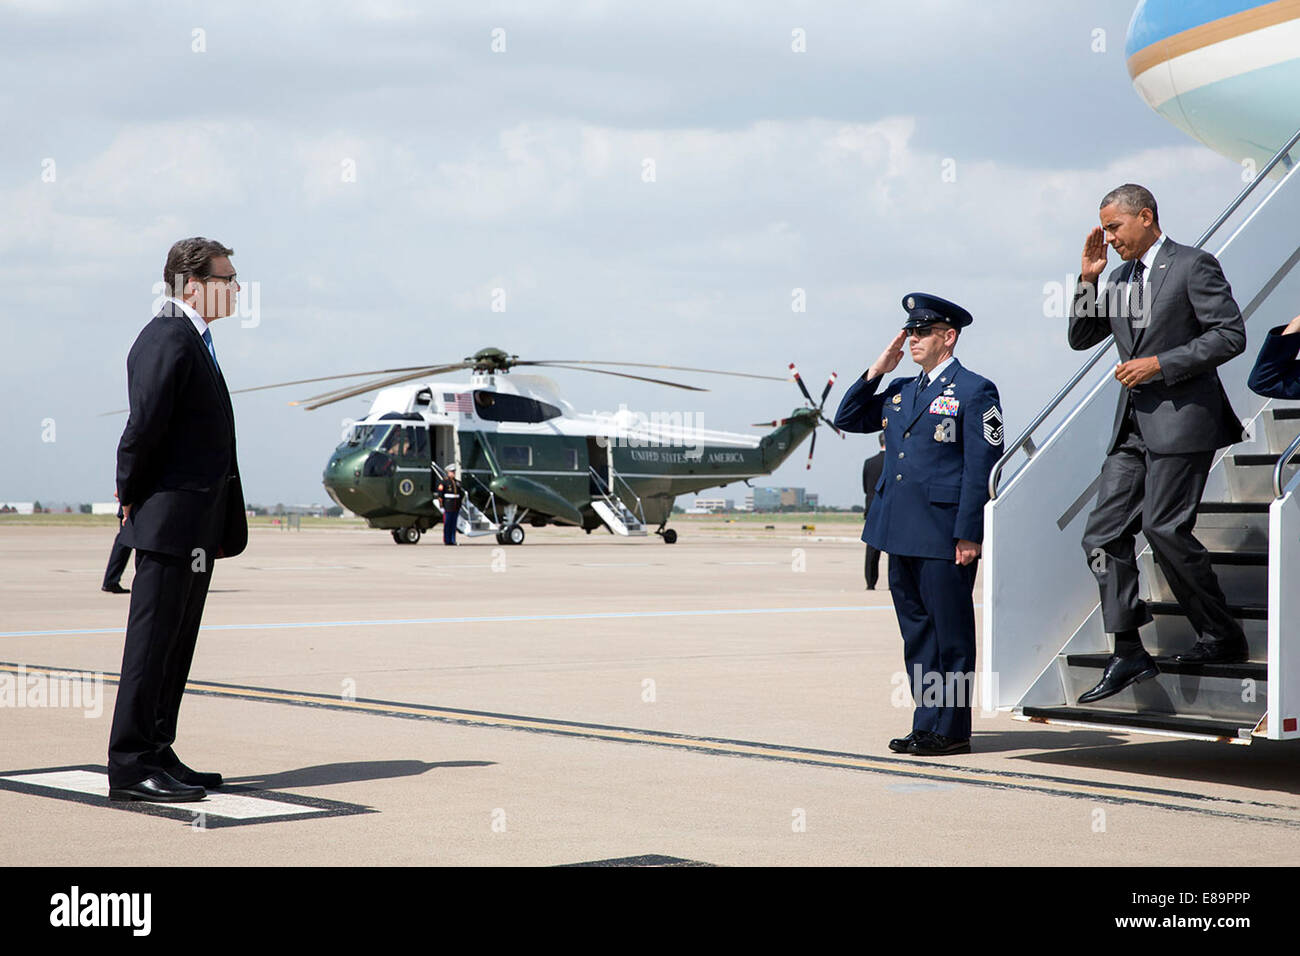 President Barack Obama salutes an Air Force member as he disembarks Air Force One to greet Gov. Rick Perry, R-Texas, - Stock Image